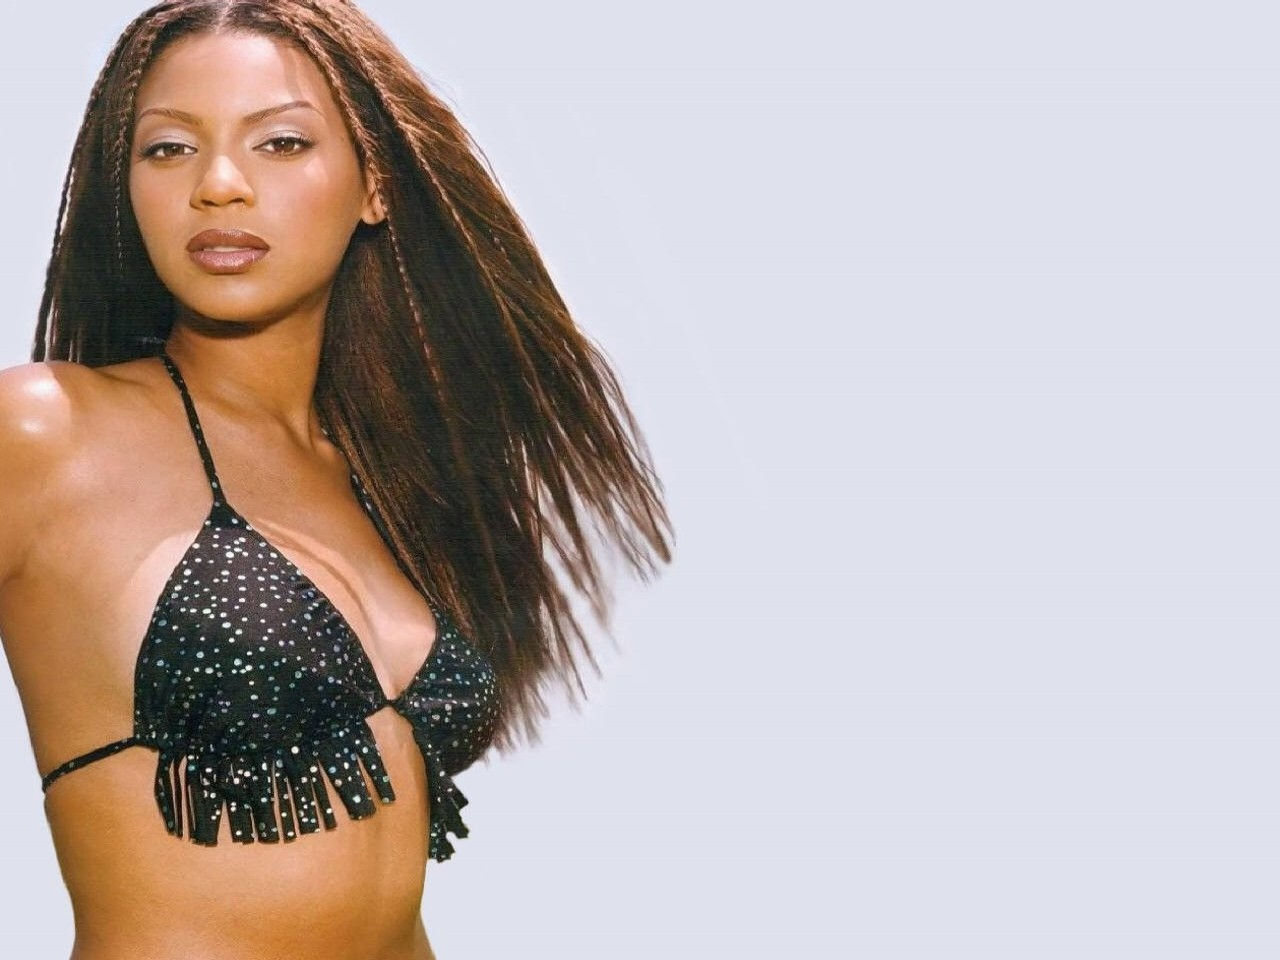 Wallpaper di Beyoncé Knowles 9